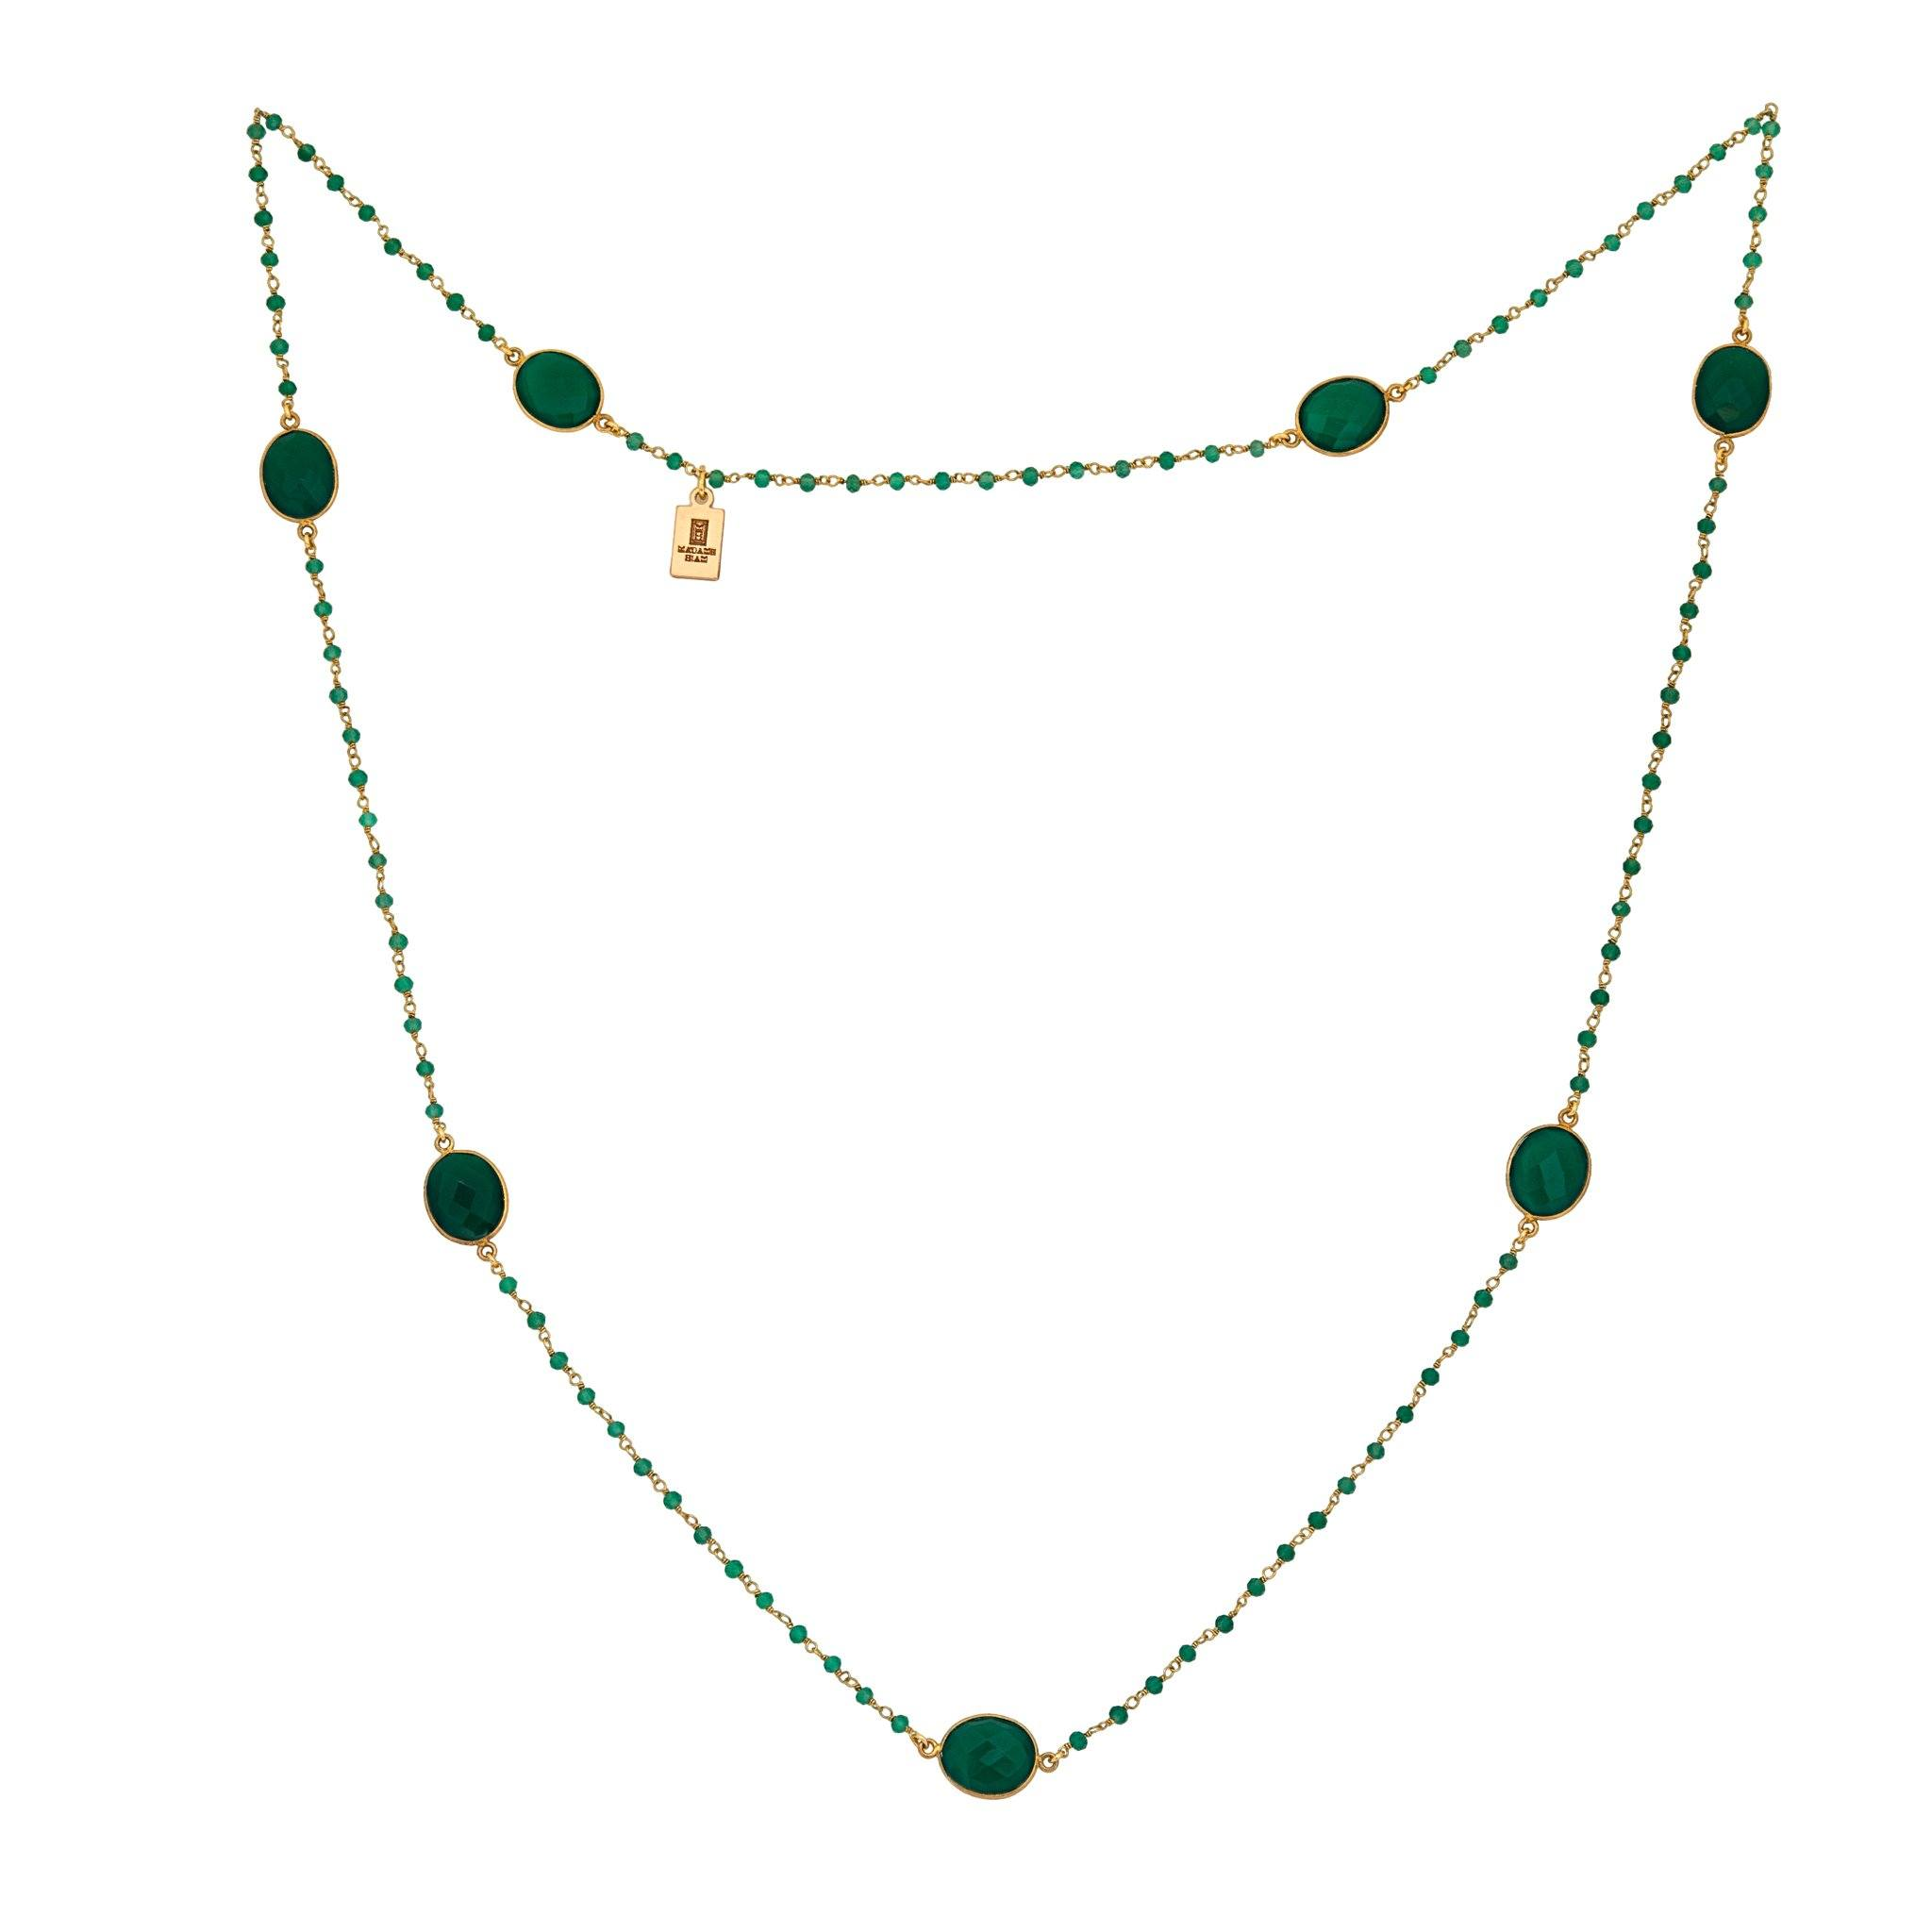 MOUSSON PERLEE green onyx station necklace with rosary chain - MadamSiam